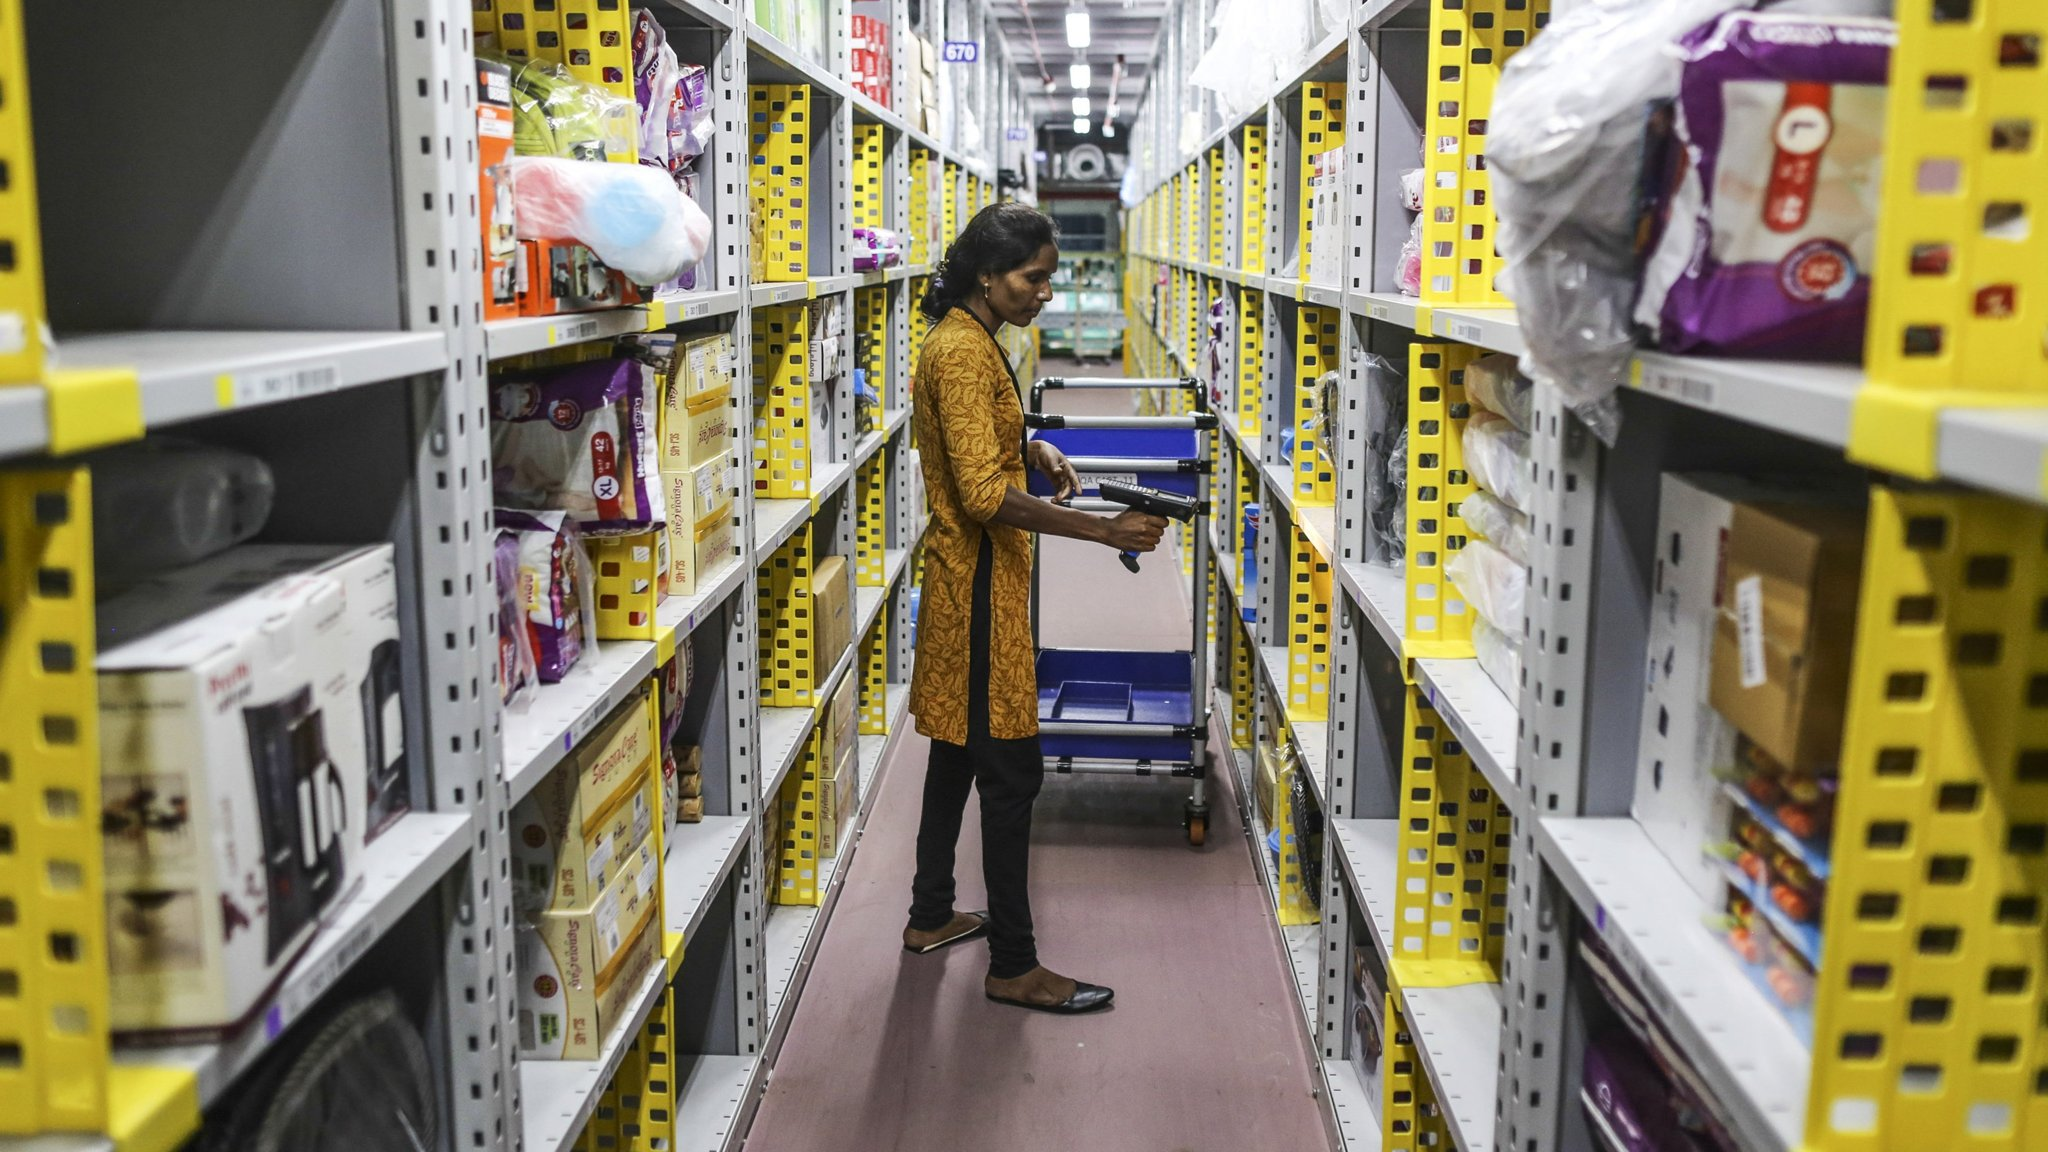 India's ecommerce law forces Amazon and Flipkart to pull